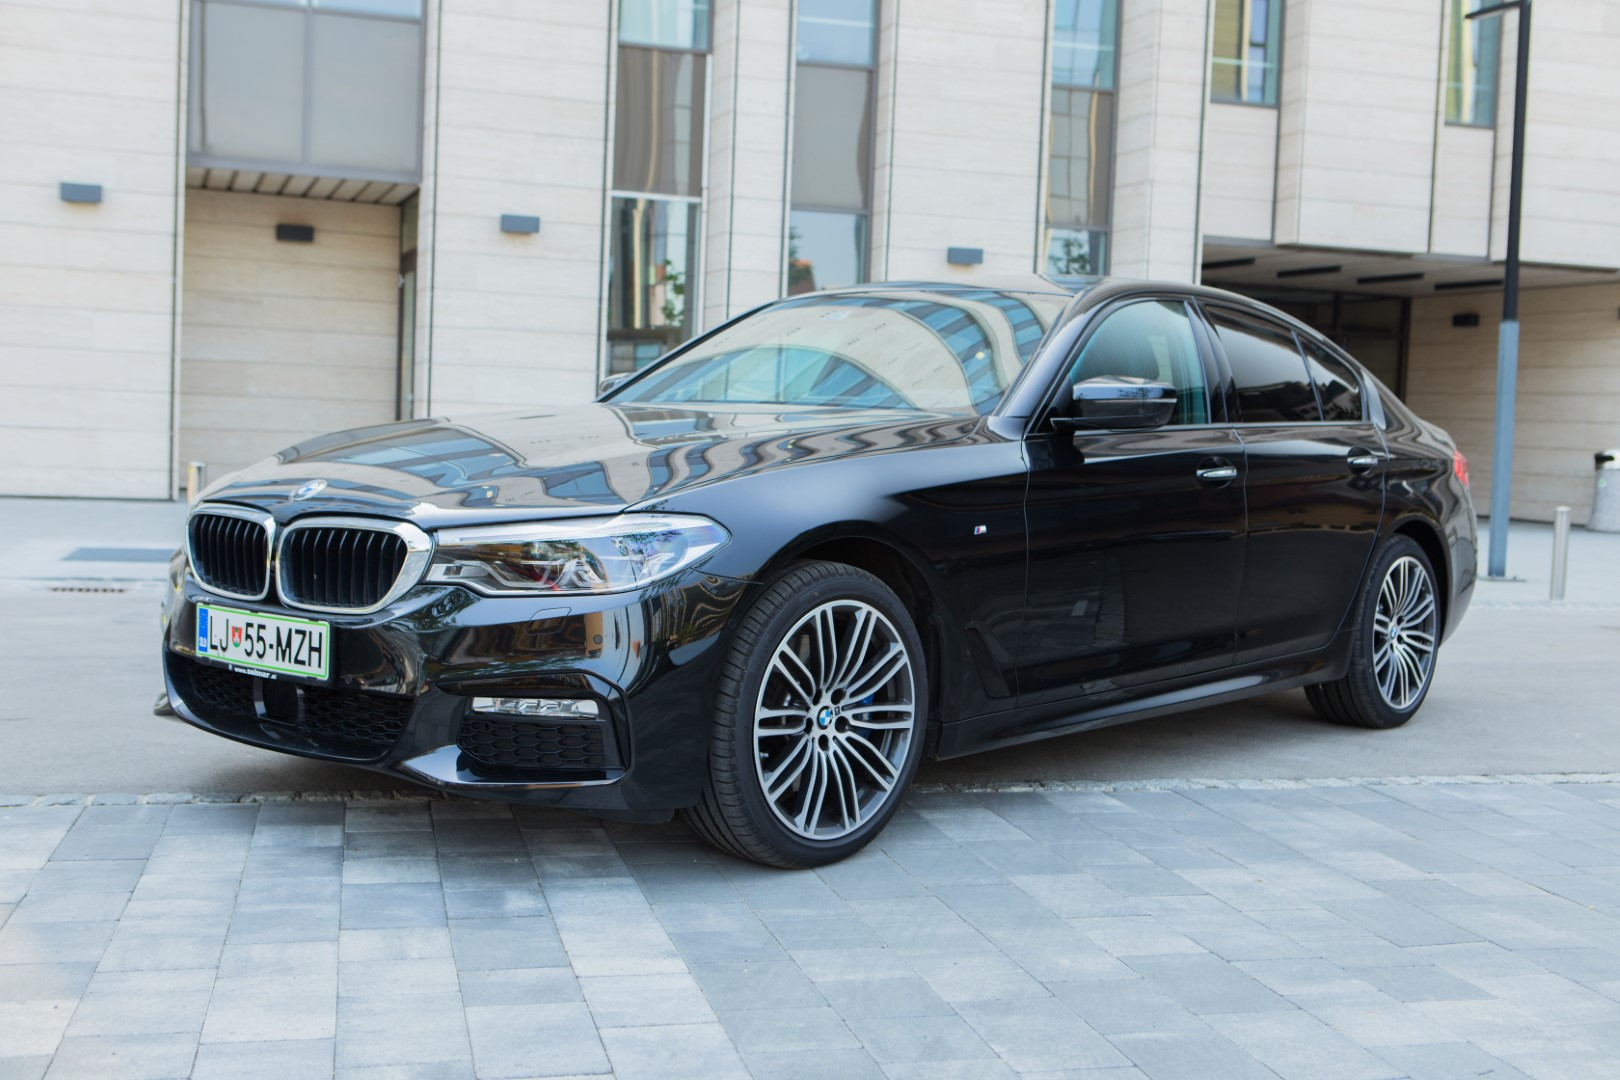 rental of BMW 5 Series or similar business-class cars